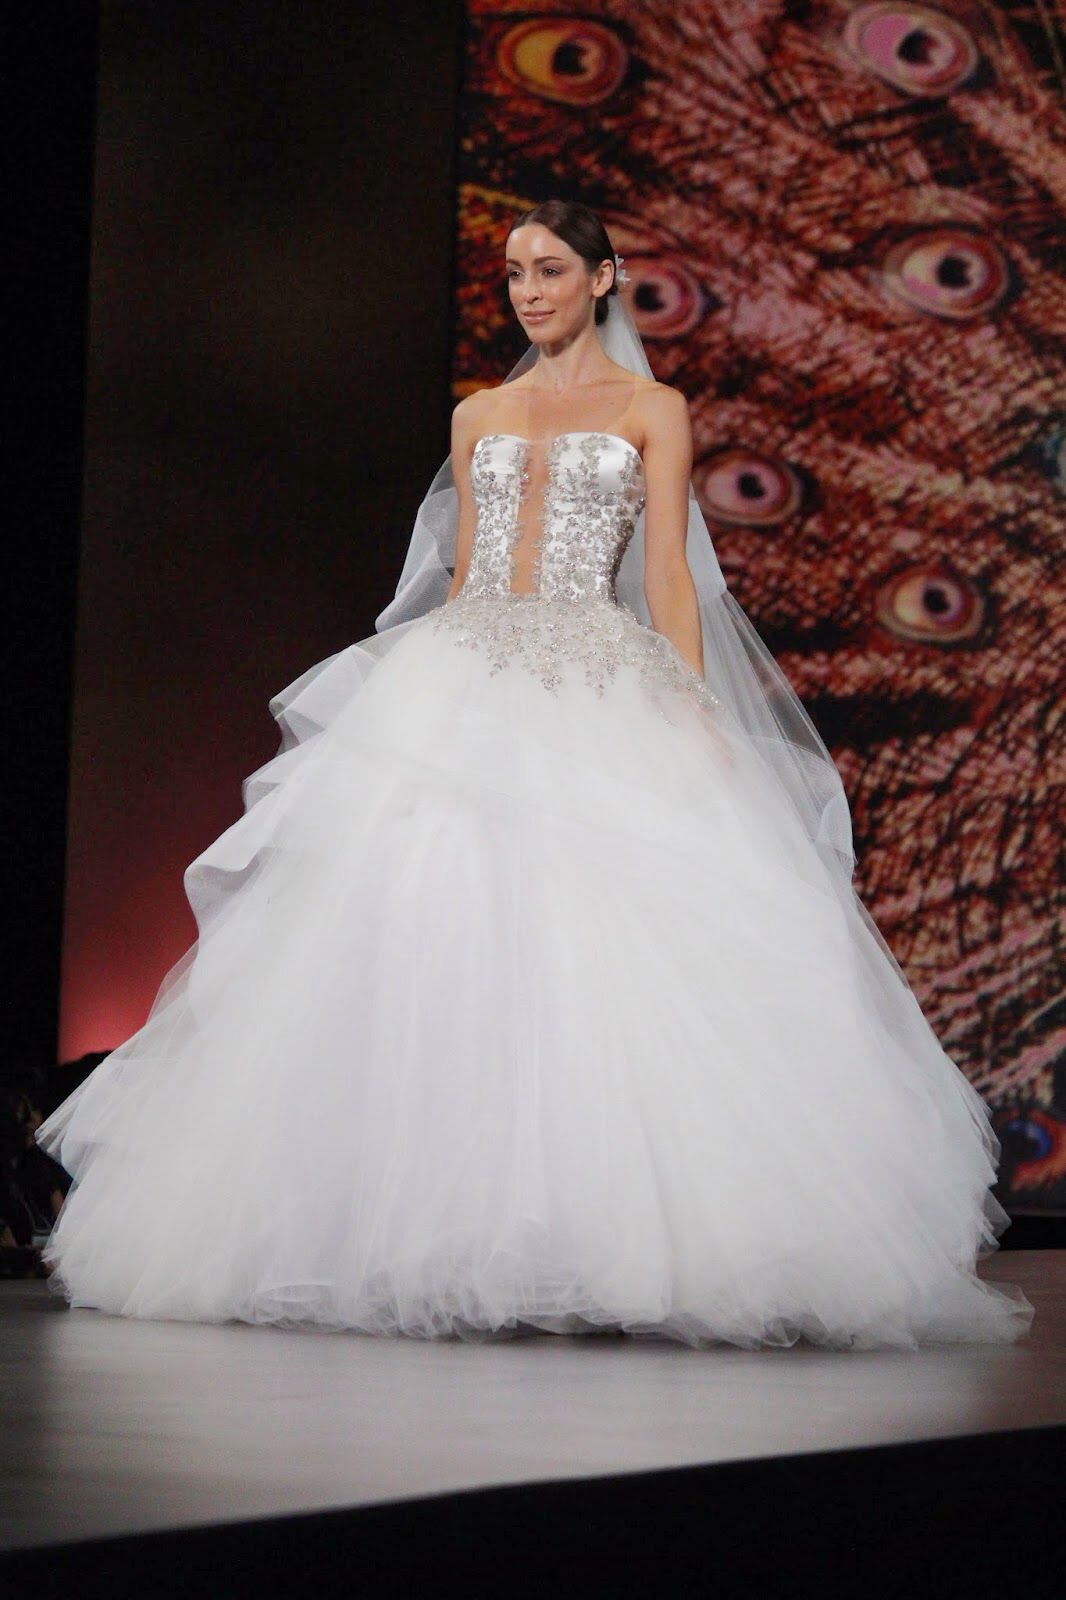 Mohamed salaheldin fidm debut 2014got to see this amazing mohamed salaheldin fidm debut 2014got to see this amazing wedding gown ombrellifo Image collections